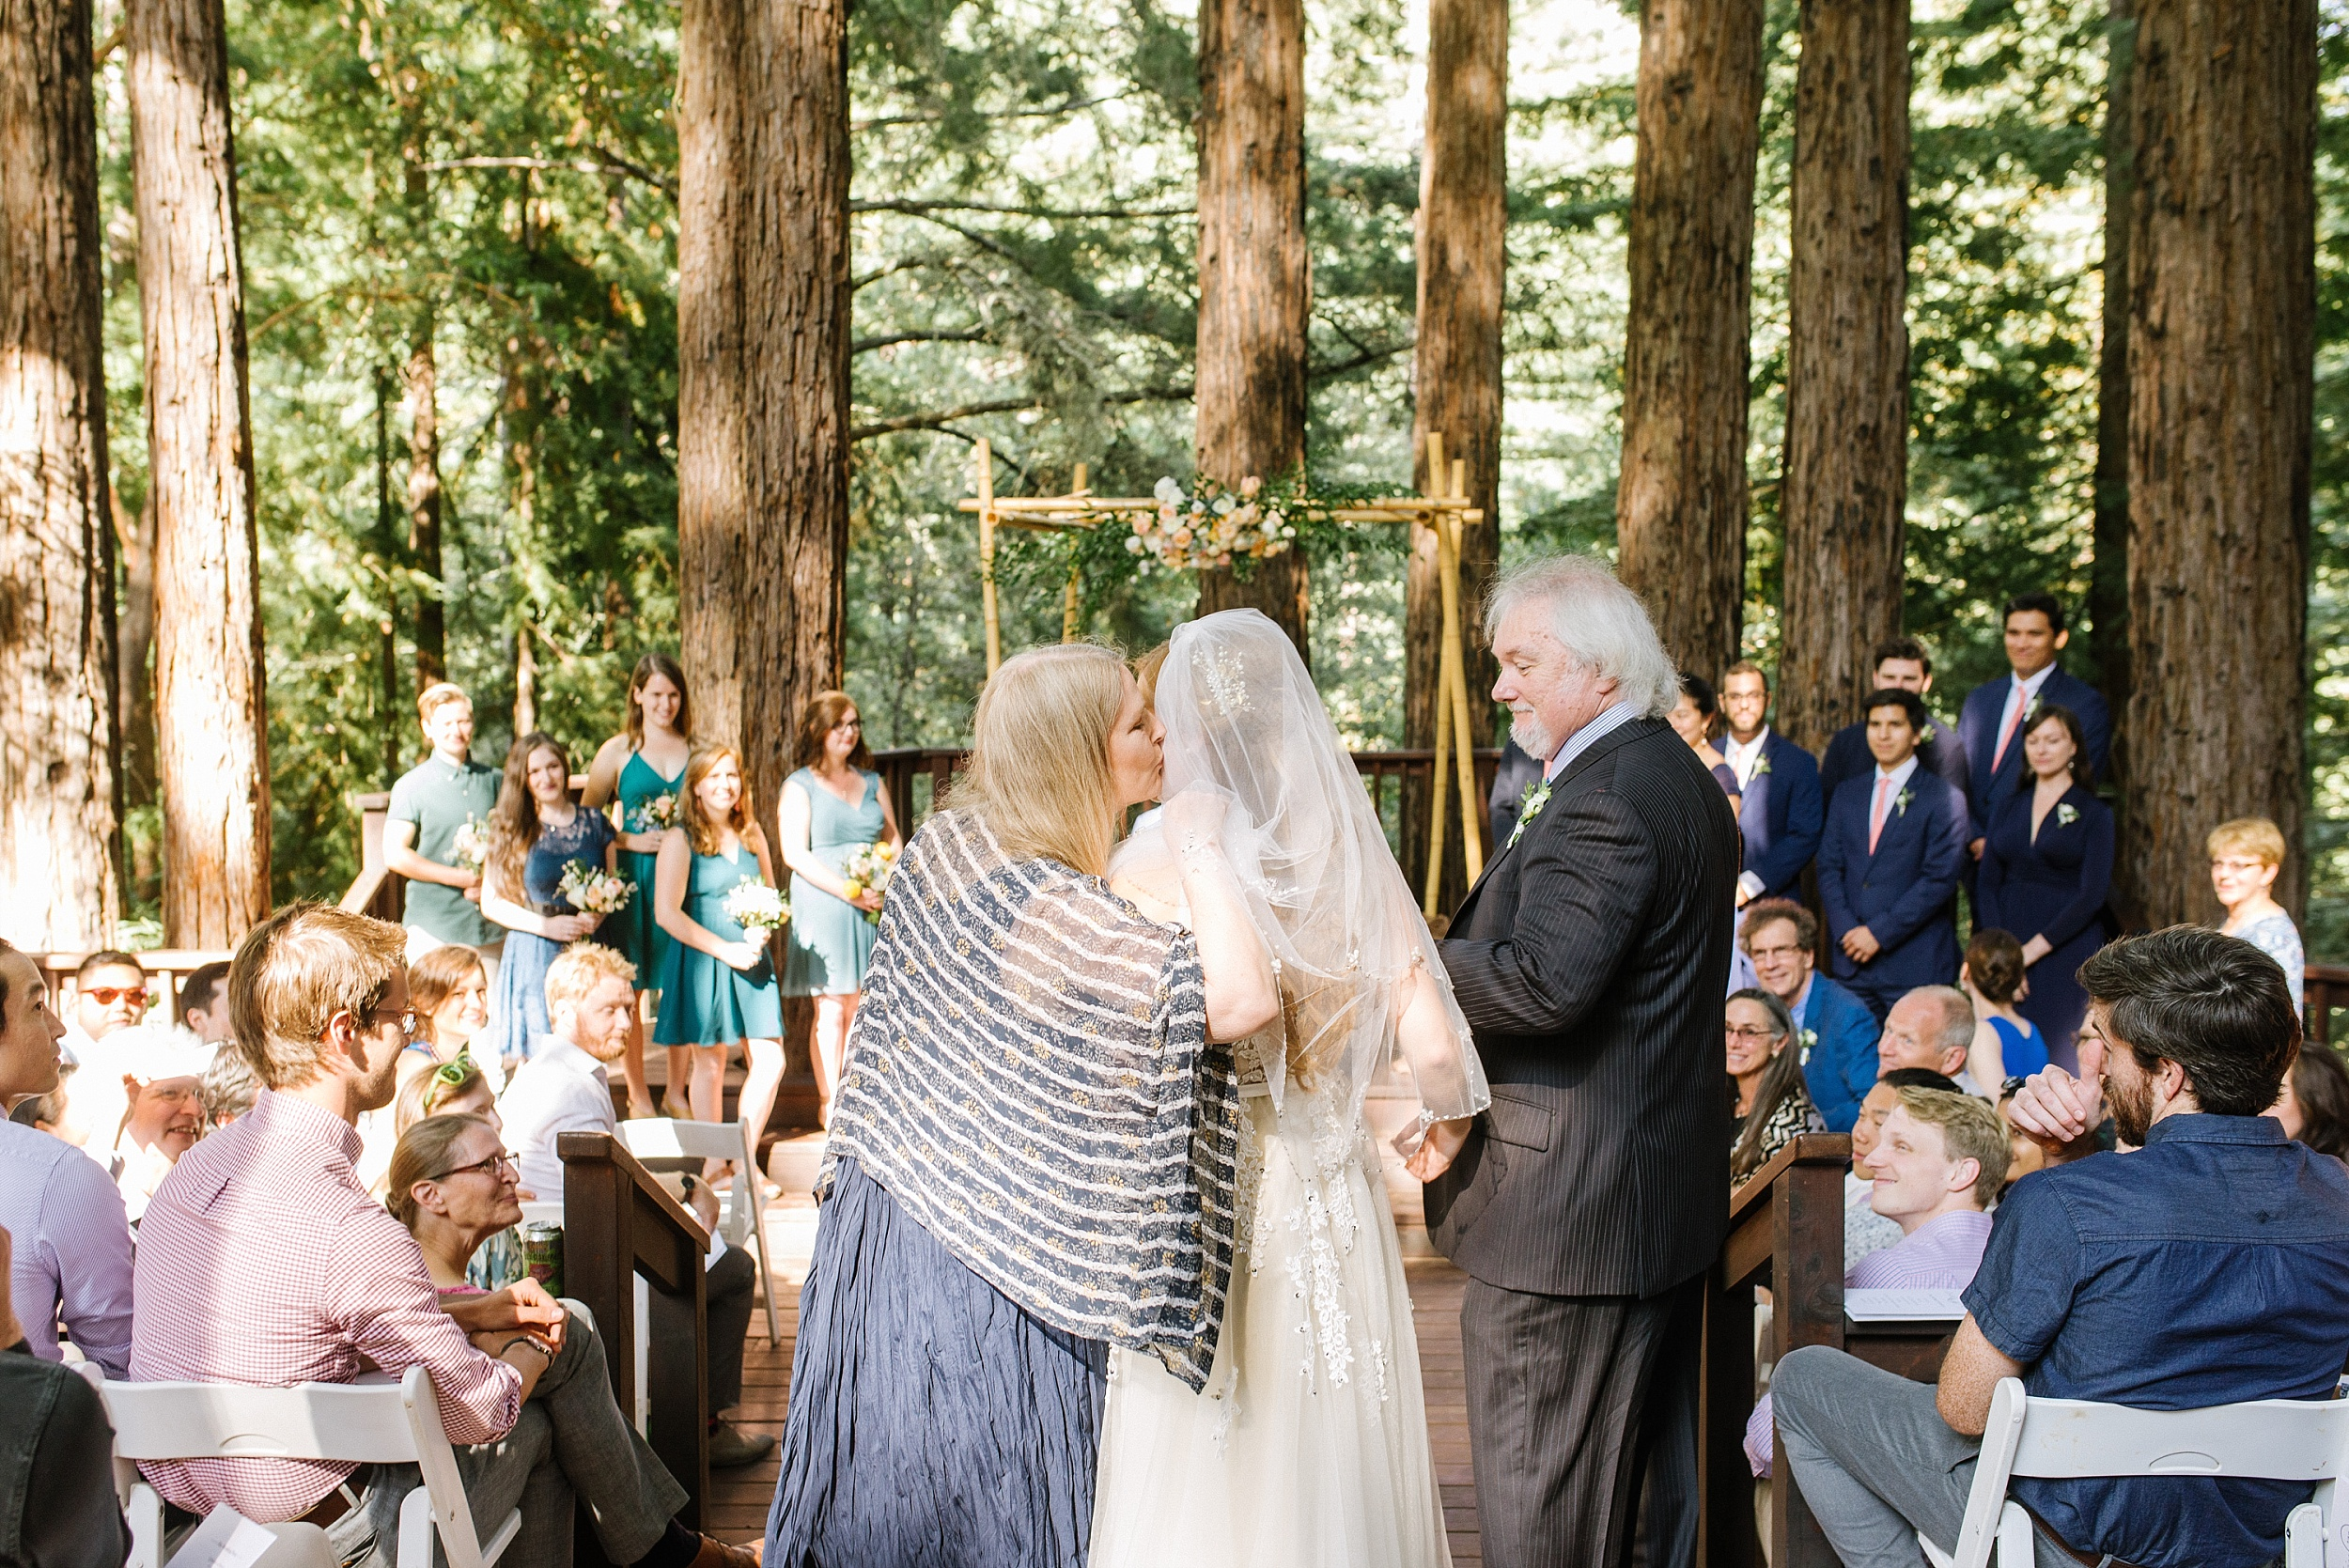 Amphitheatre-of-the-Redwoods-wedding-erikariley_chelsea-dier-photography_0018.jpg